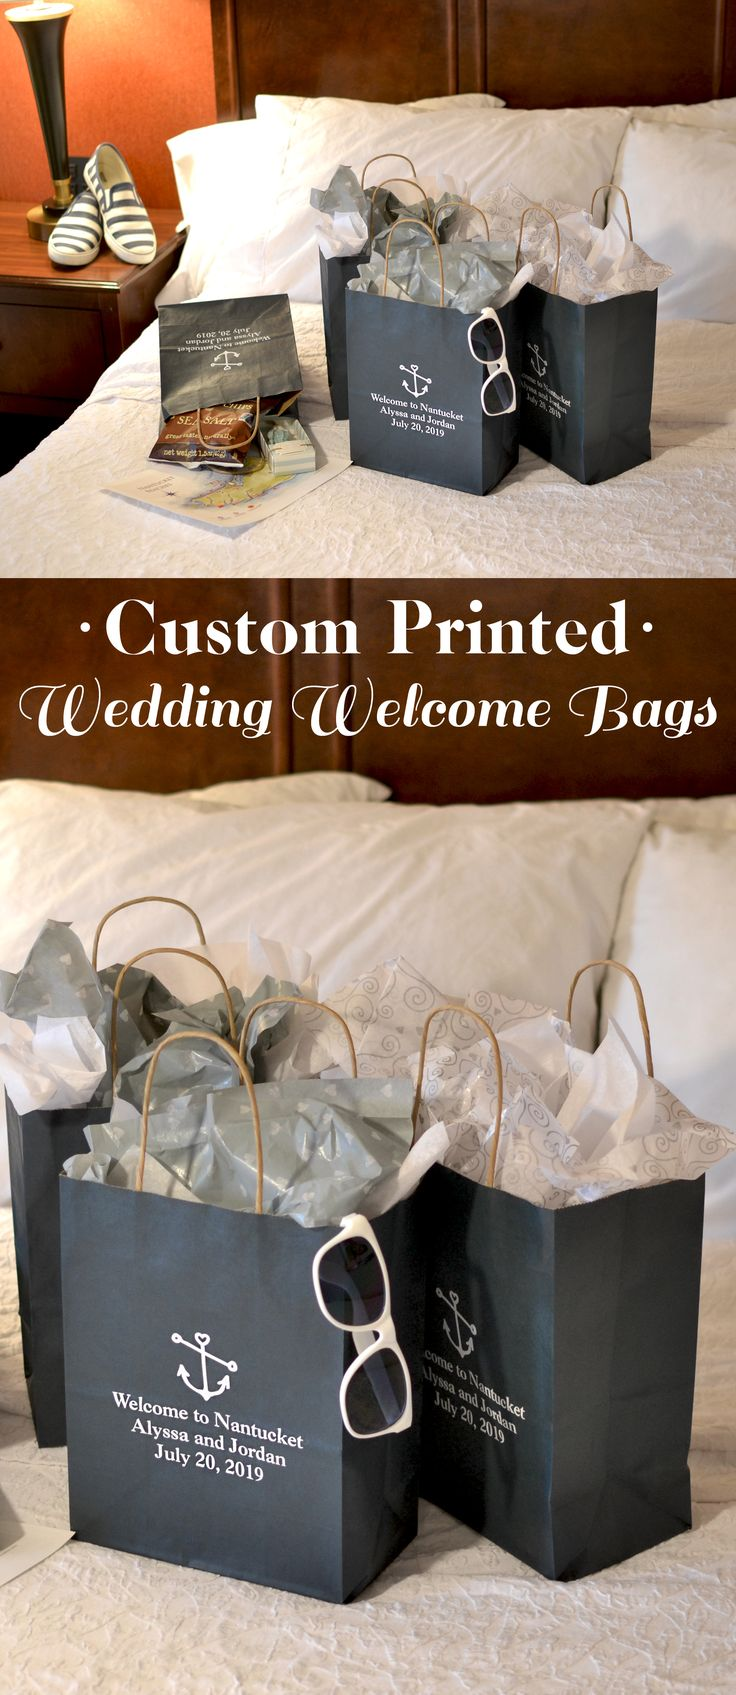 Surprise Wedding Gift For Groom : about Wedding Hotel Bags on Pinterest Welcome gifts for wedding ...